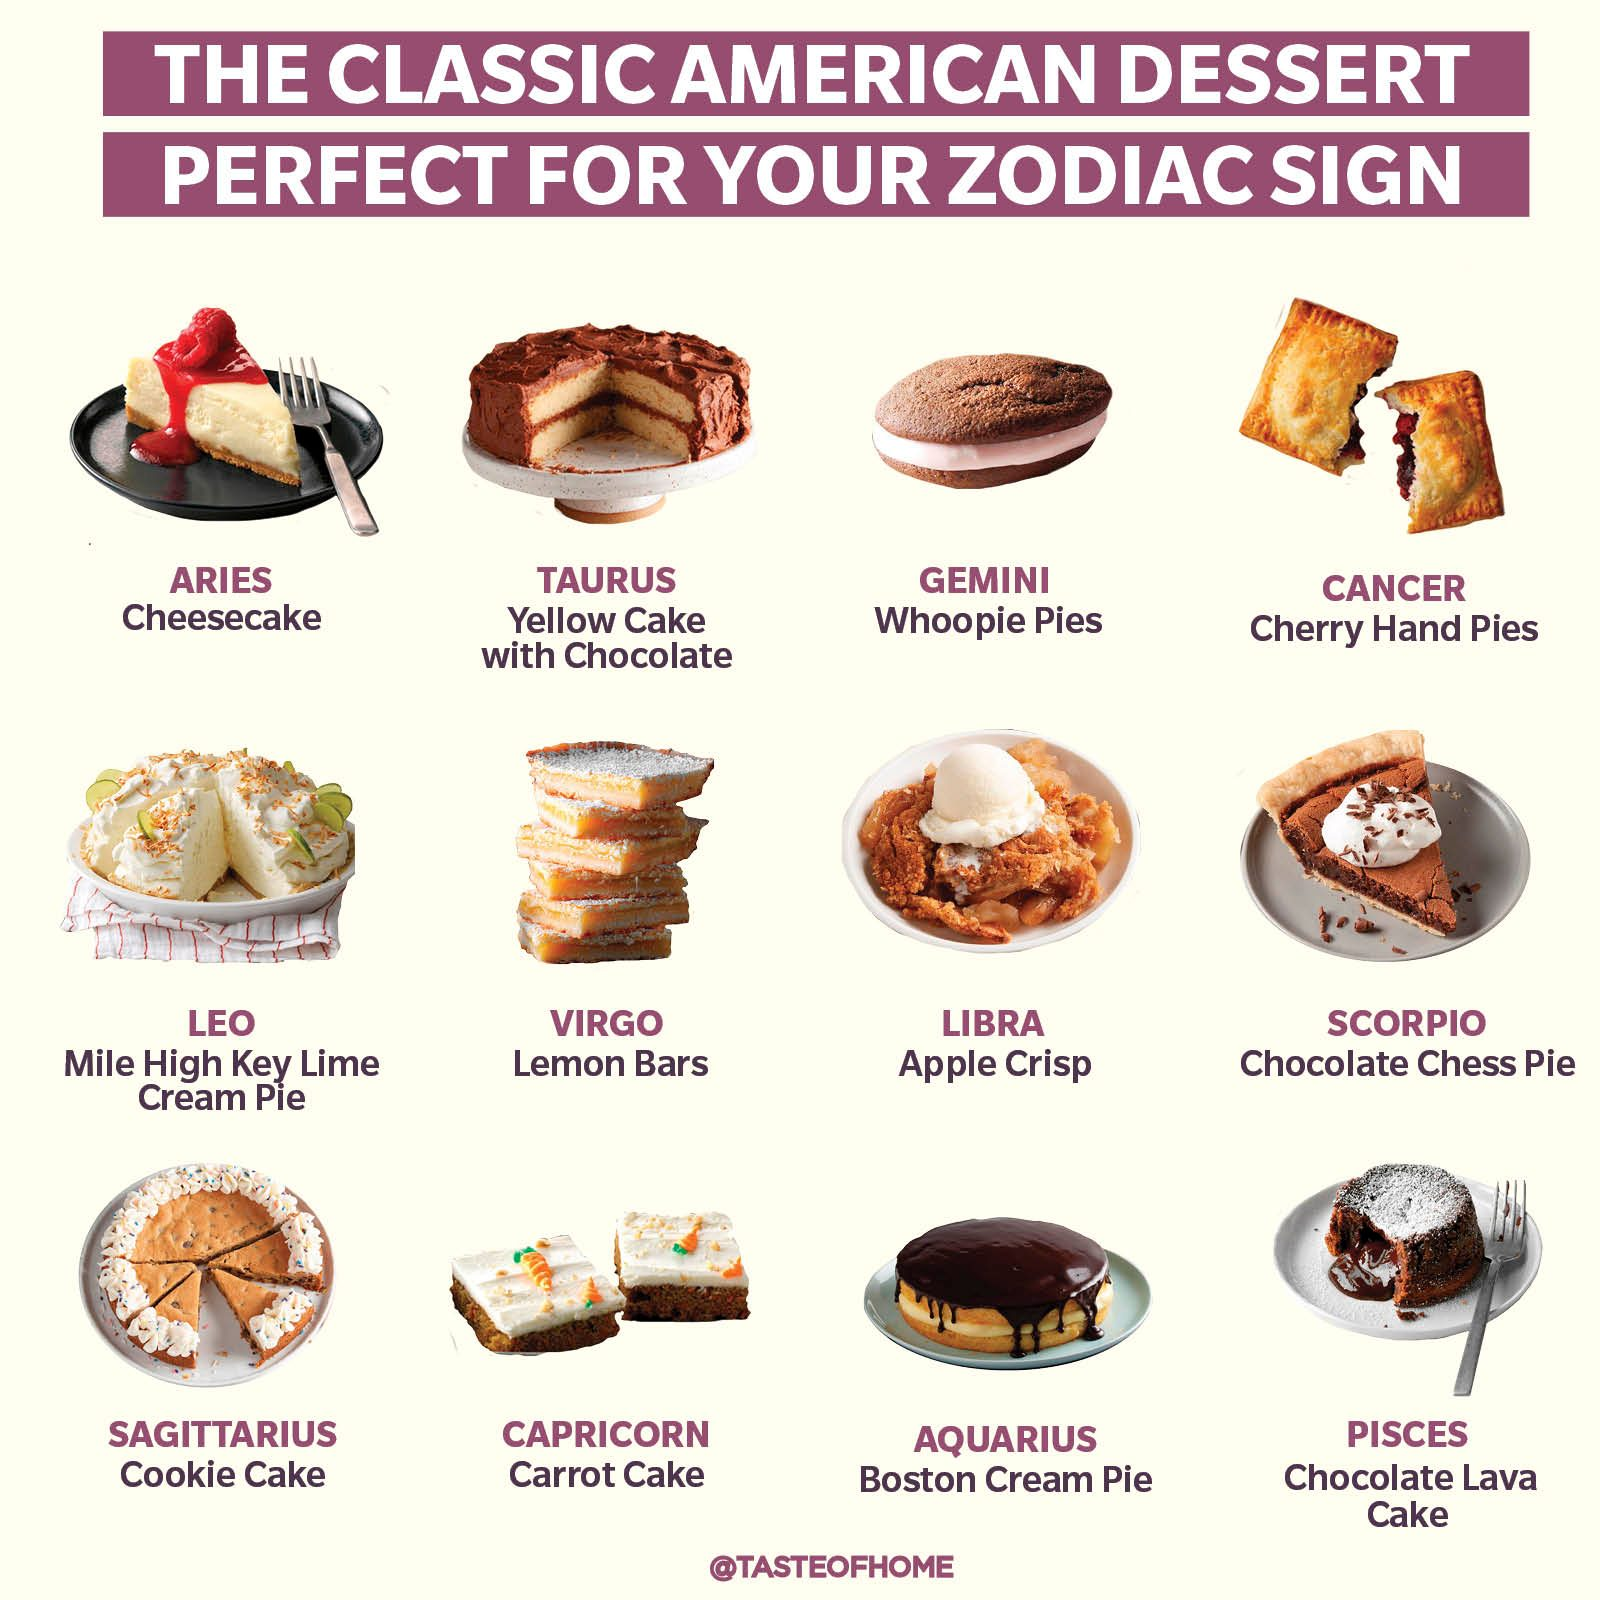 The Classic American Dessert Perfect For Your Zodiac Sign